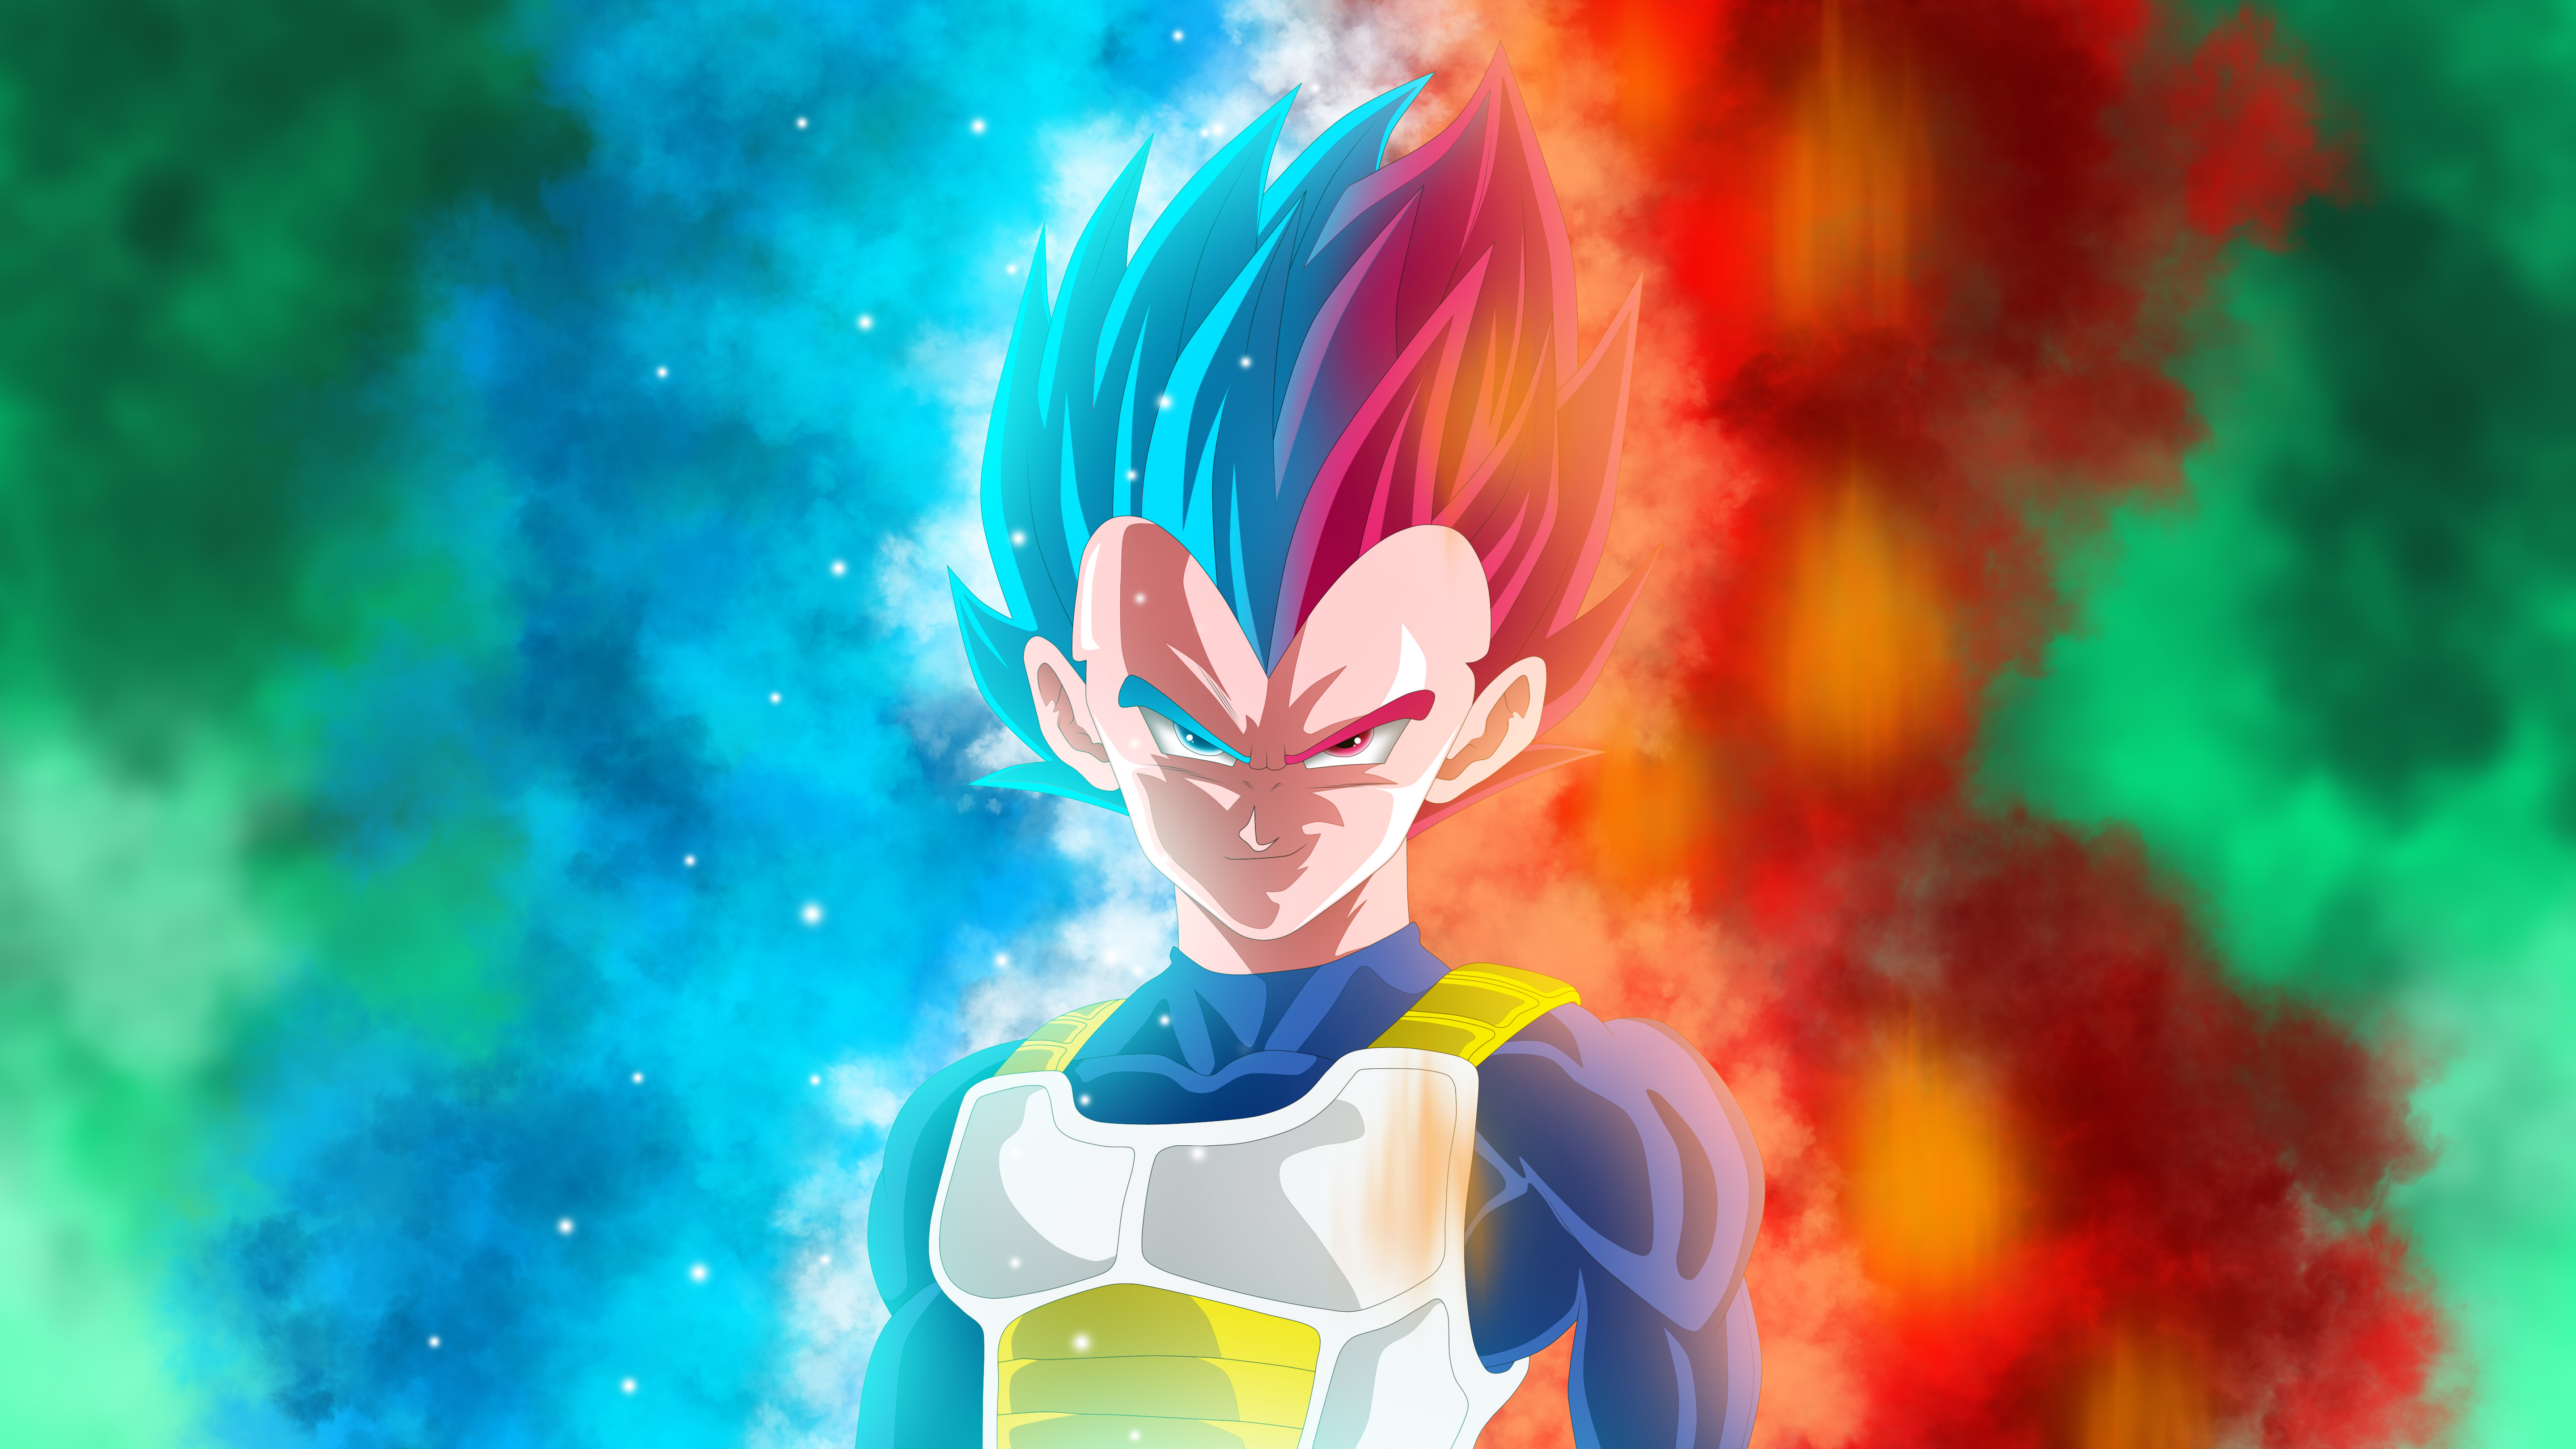 Vegeta dragon ball super hd anime 4k wallpapers images - 5k anime wallpaper ...